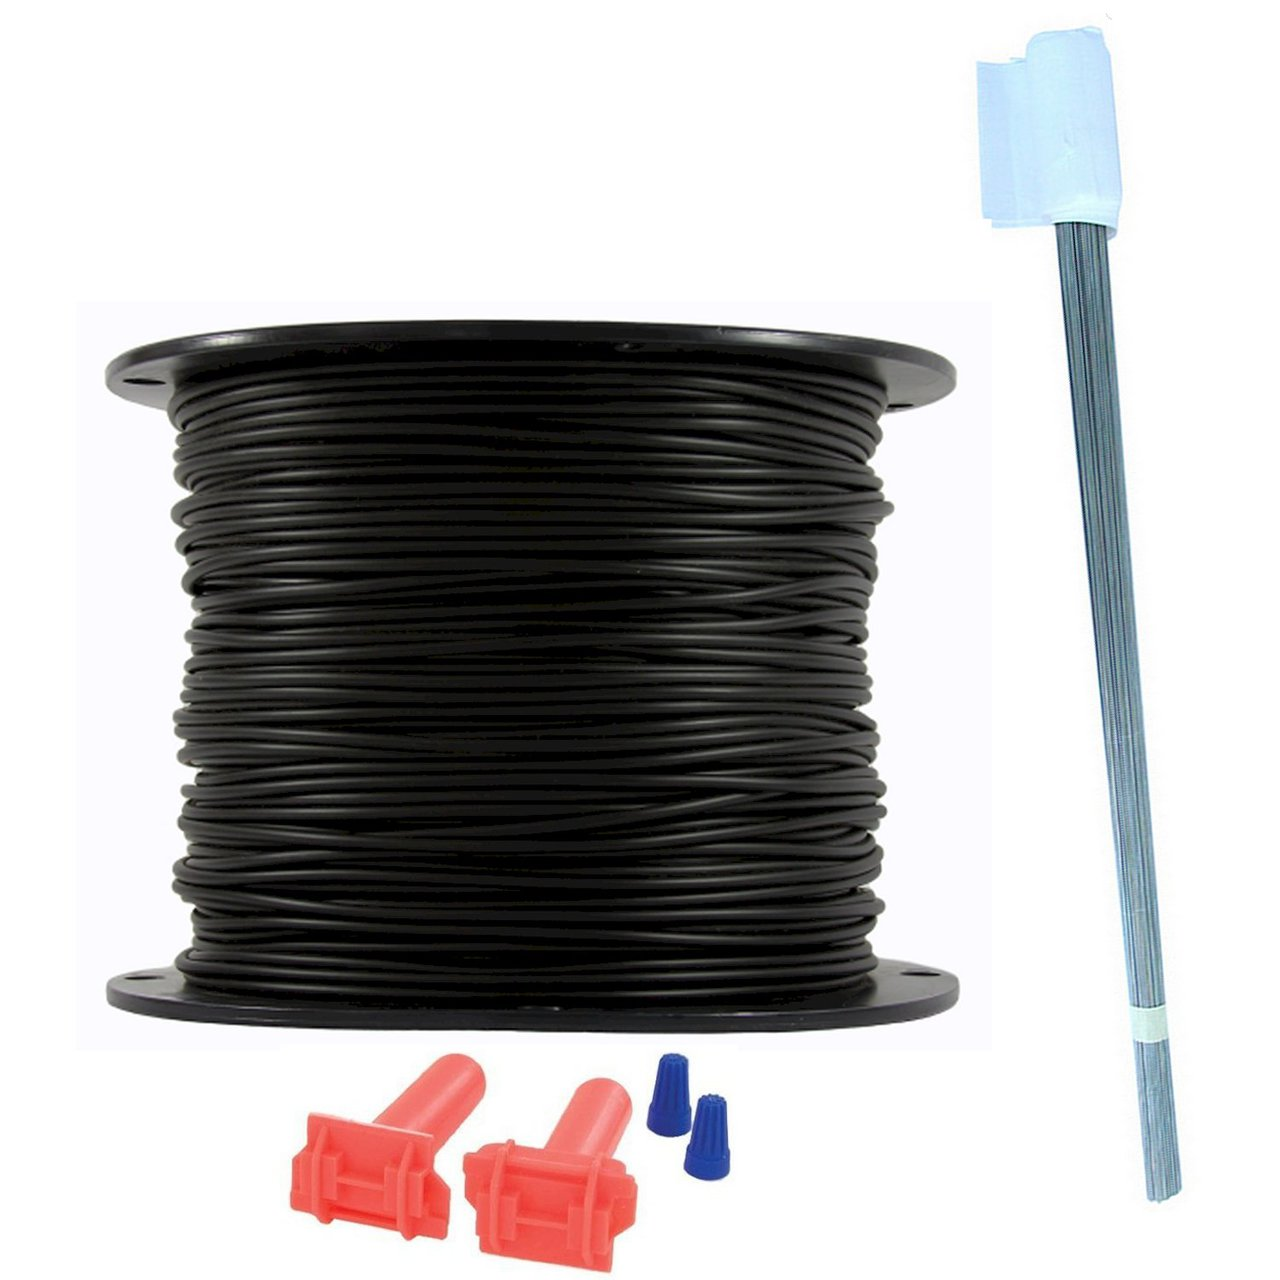 Heavy duty pet fence wire and flag kit 1000 feet rfa 1000 free shipping over 49 on the worlds best pet products solutioingenieria Image collections